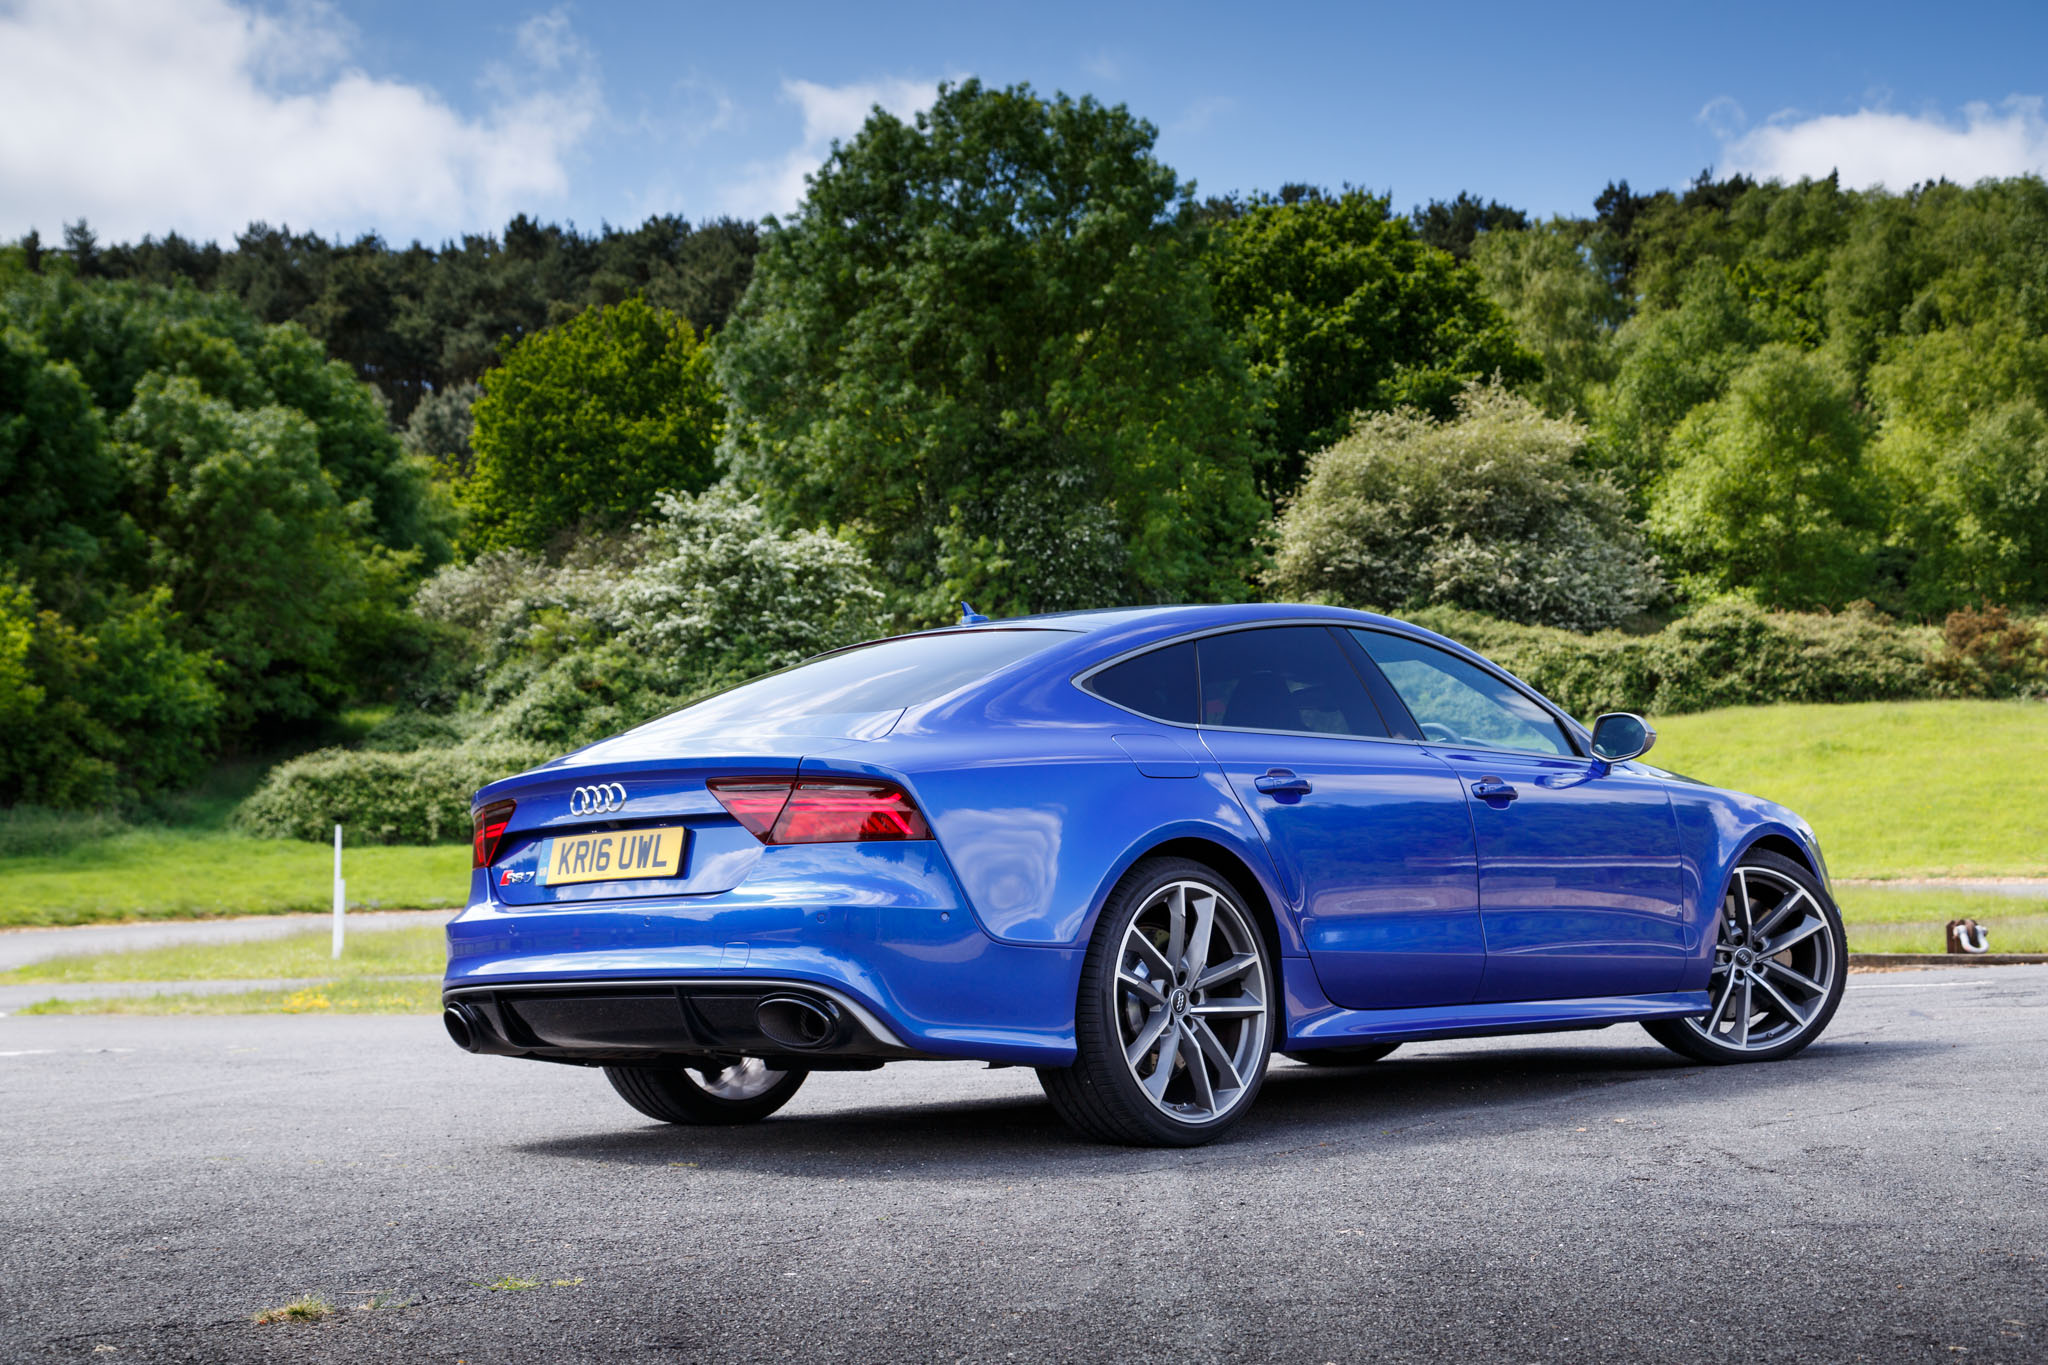 2016 Audi Rs7 Sportback Review The Best Sounding Audi